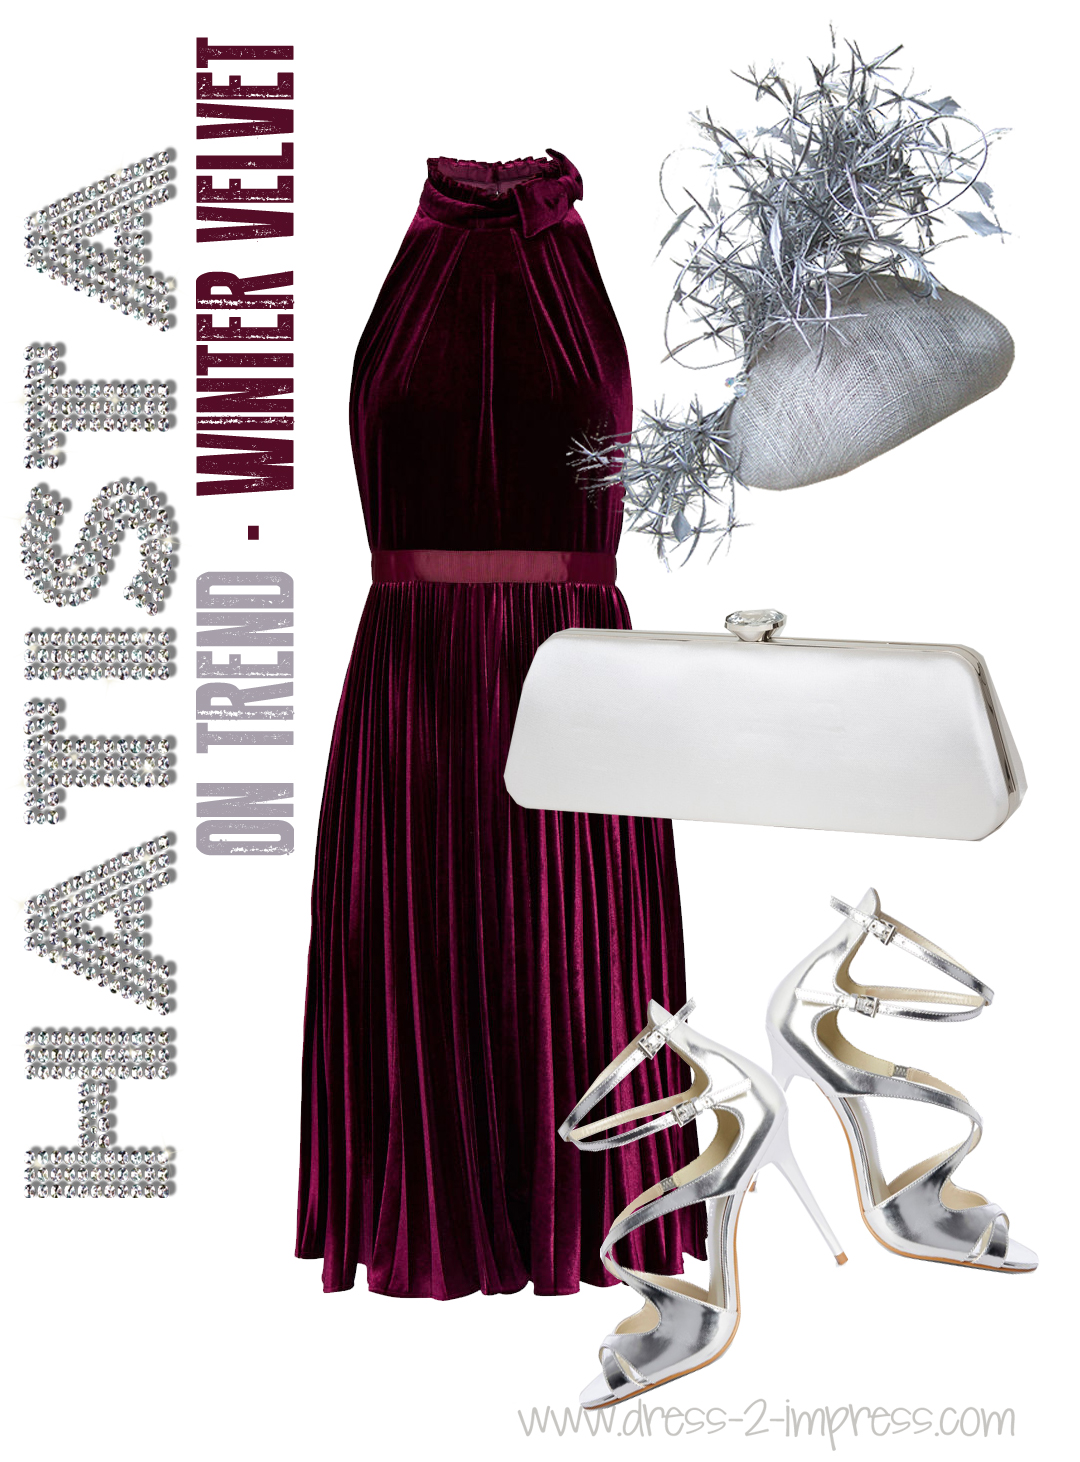 Velvet Trend. What to wear to a Winter Wedding. Winter Wedding Guests and Mother of the Bride outfits. Read Outfit Ideas and Tips for Winter Weddings from THE HATISTA www.dress-2-impress.com #fashionista #winterwedding #weddings #outfits #weddingthemes #outfitideas